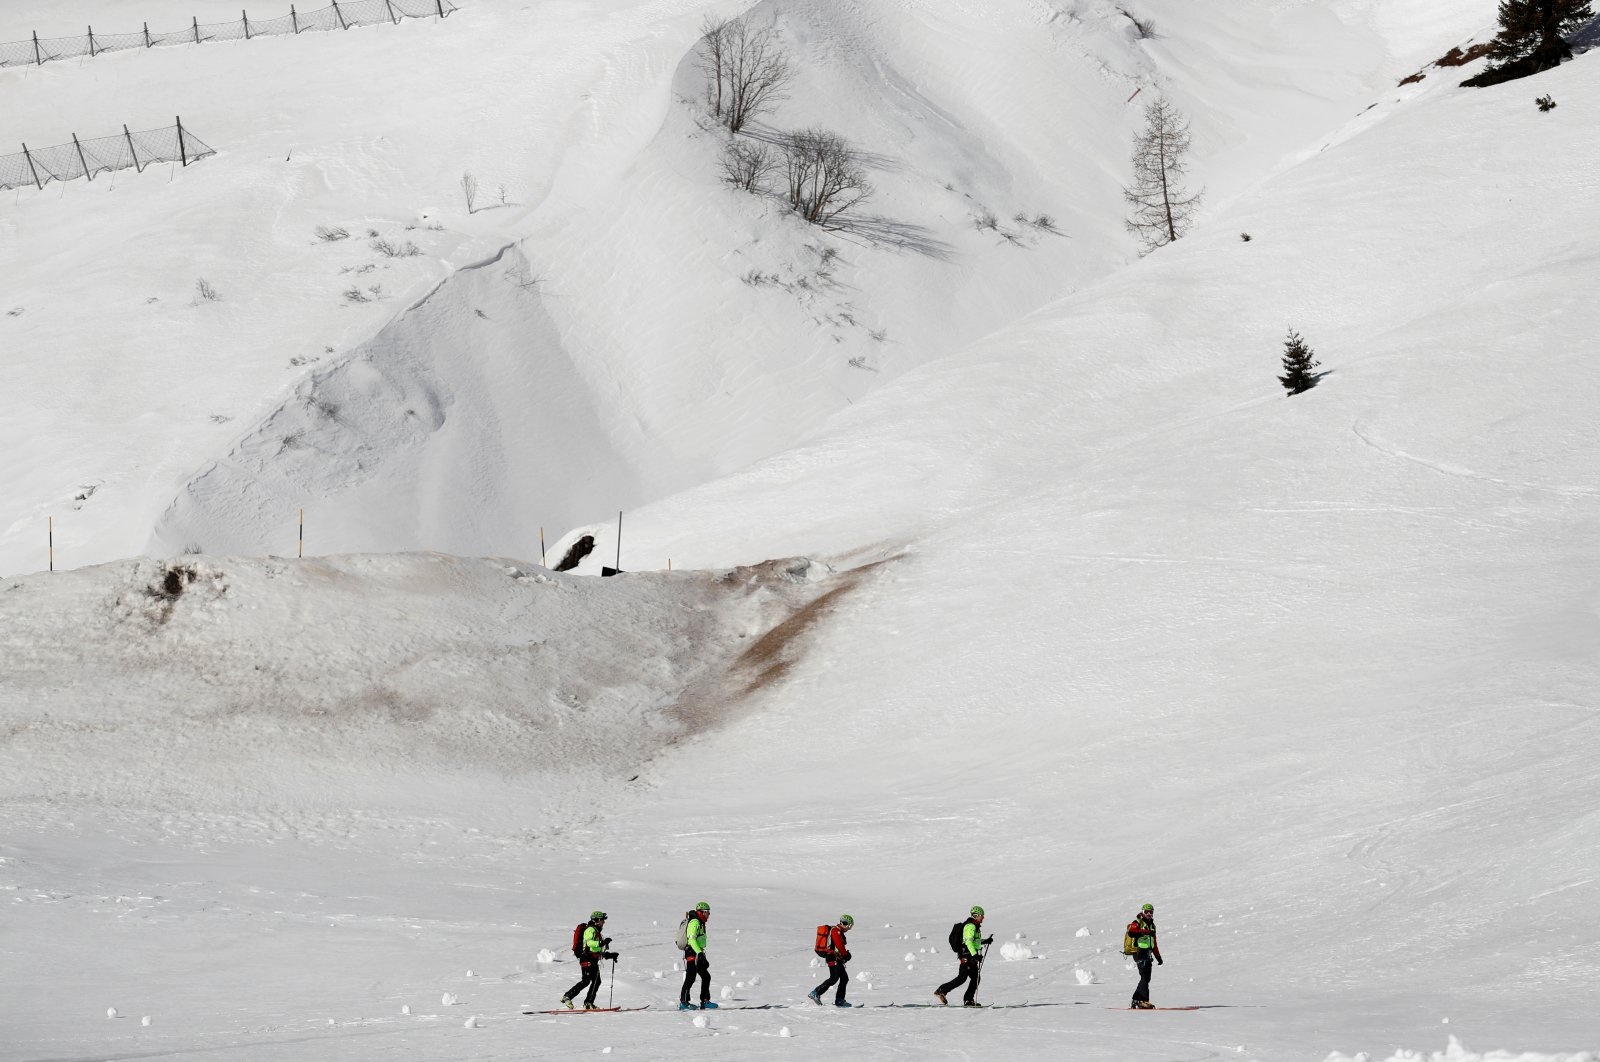 Italian alpine rescuers participate in an avalanche rescue training exercise in Passo Fedaia, Italy, Feb. 11, 2020. (Reuters Photo)